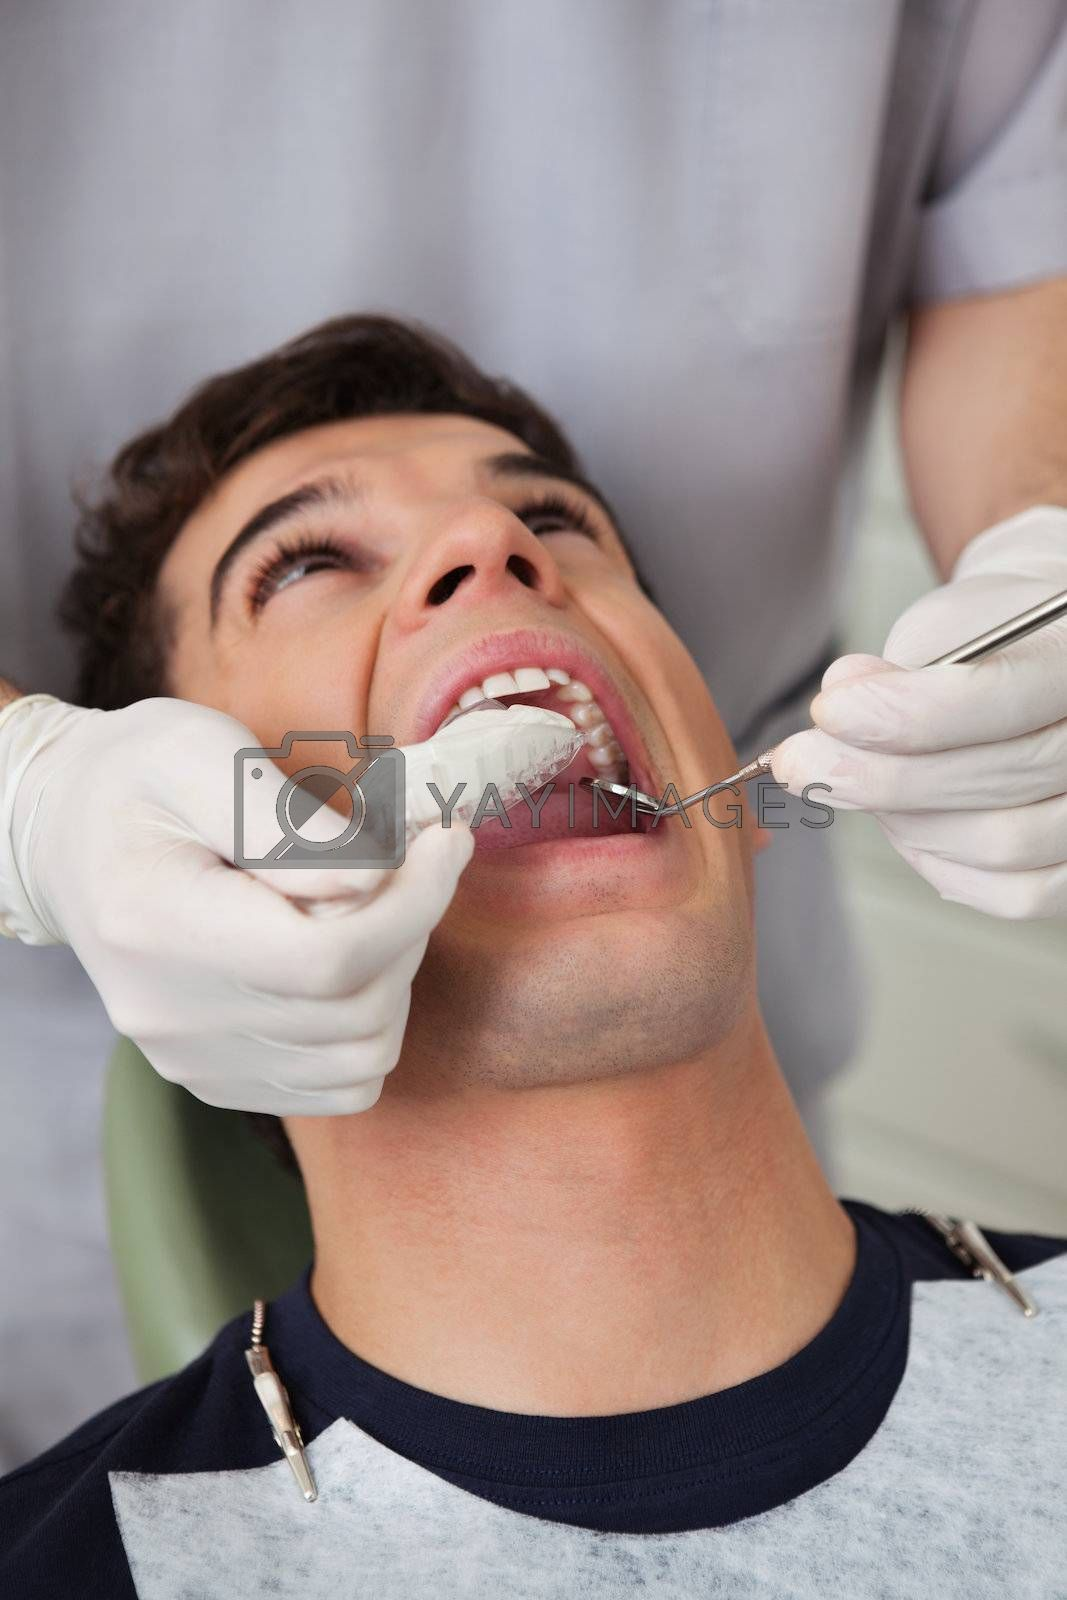 Dentist putting in molds in patients mouth